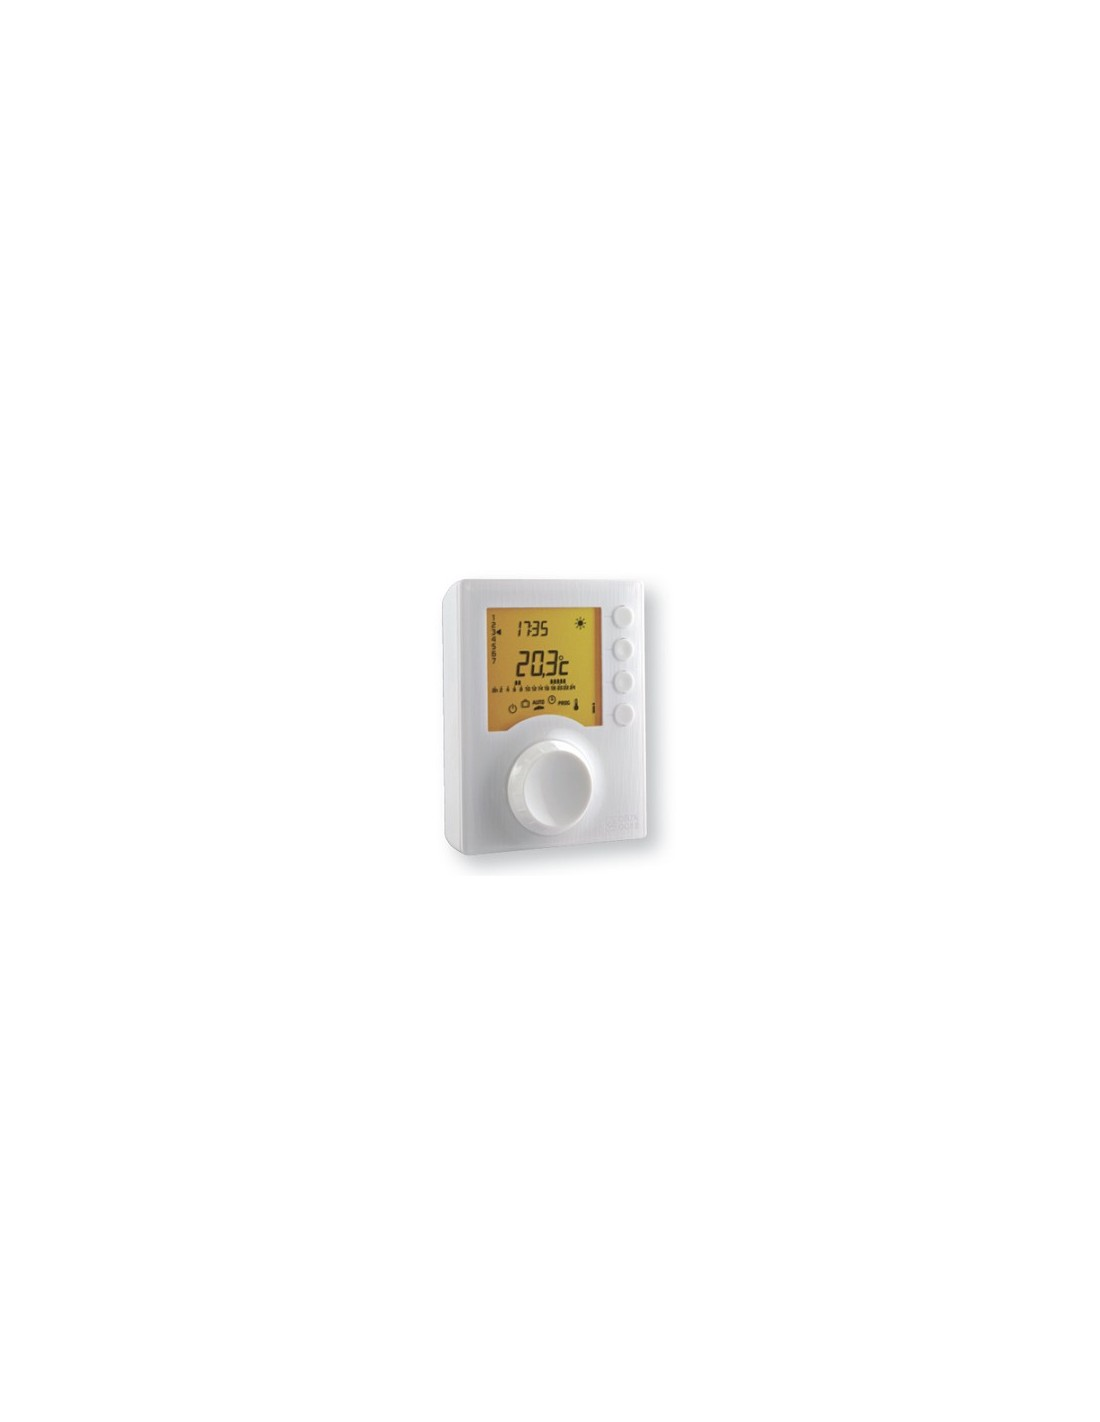 Thermostat programmable tybox137 radio delta dor - Thermostat programmable sans fil ...